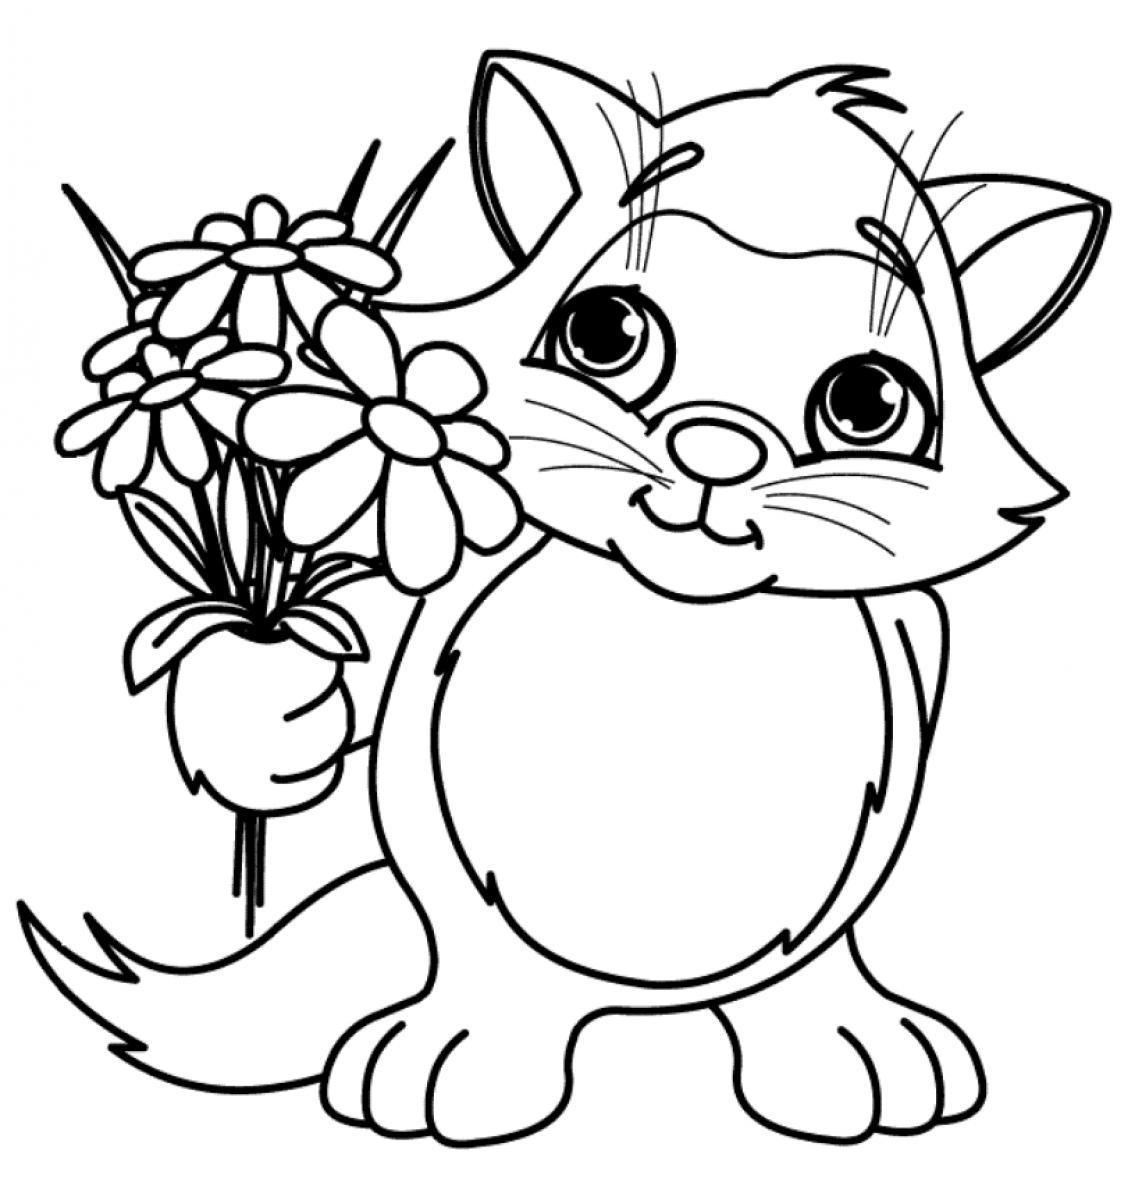 flower coloring sheets free free printable flower coloring pages for kids best free coloring sheets flower